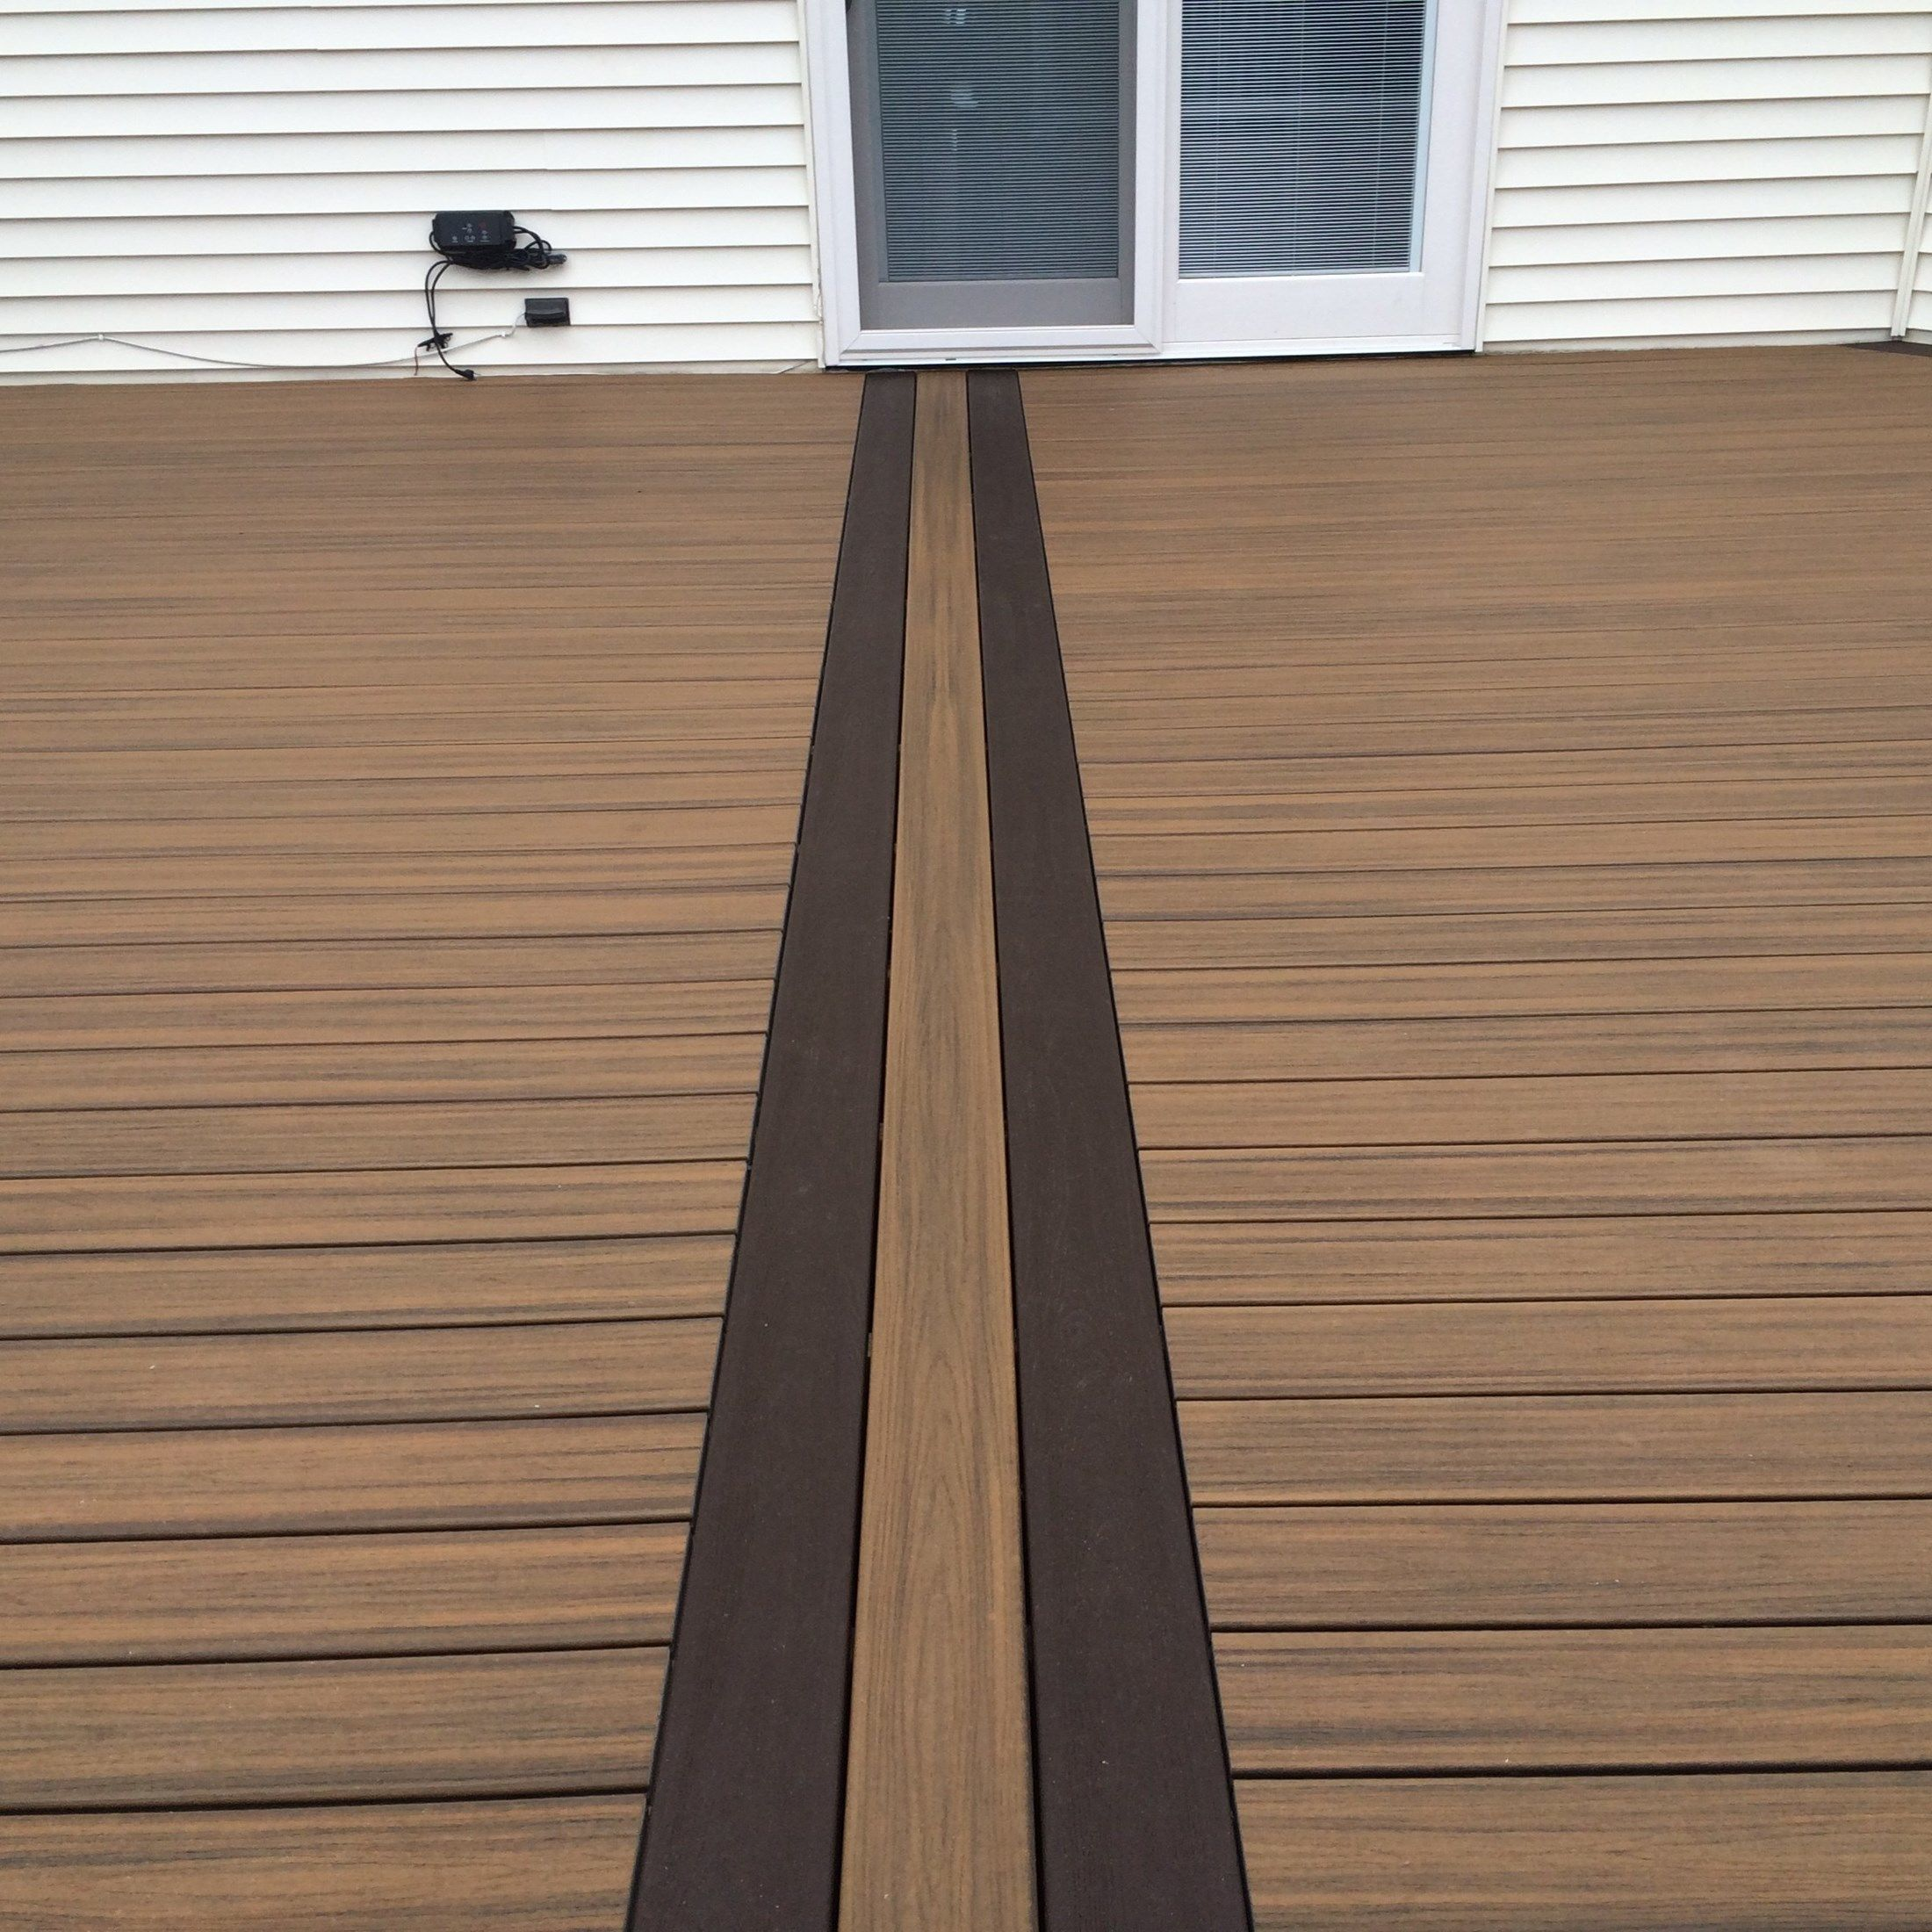 Custom deck in Millstone N.J. - Picture 6712